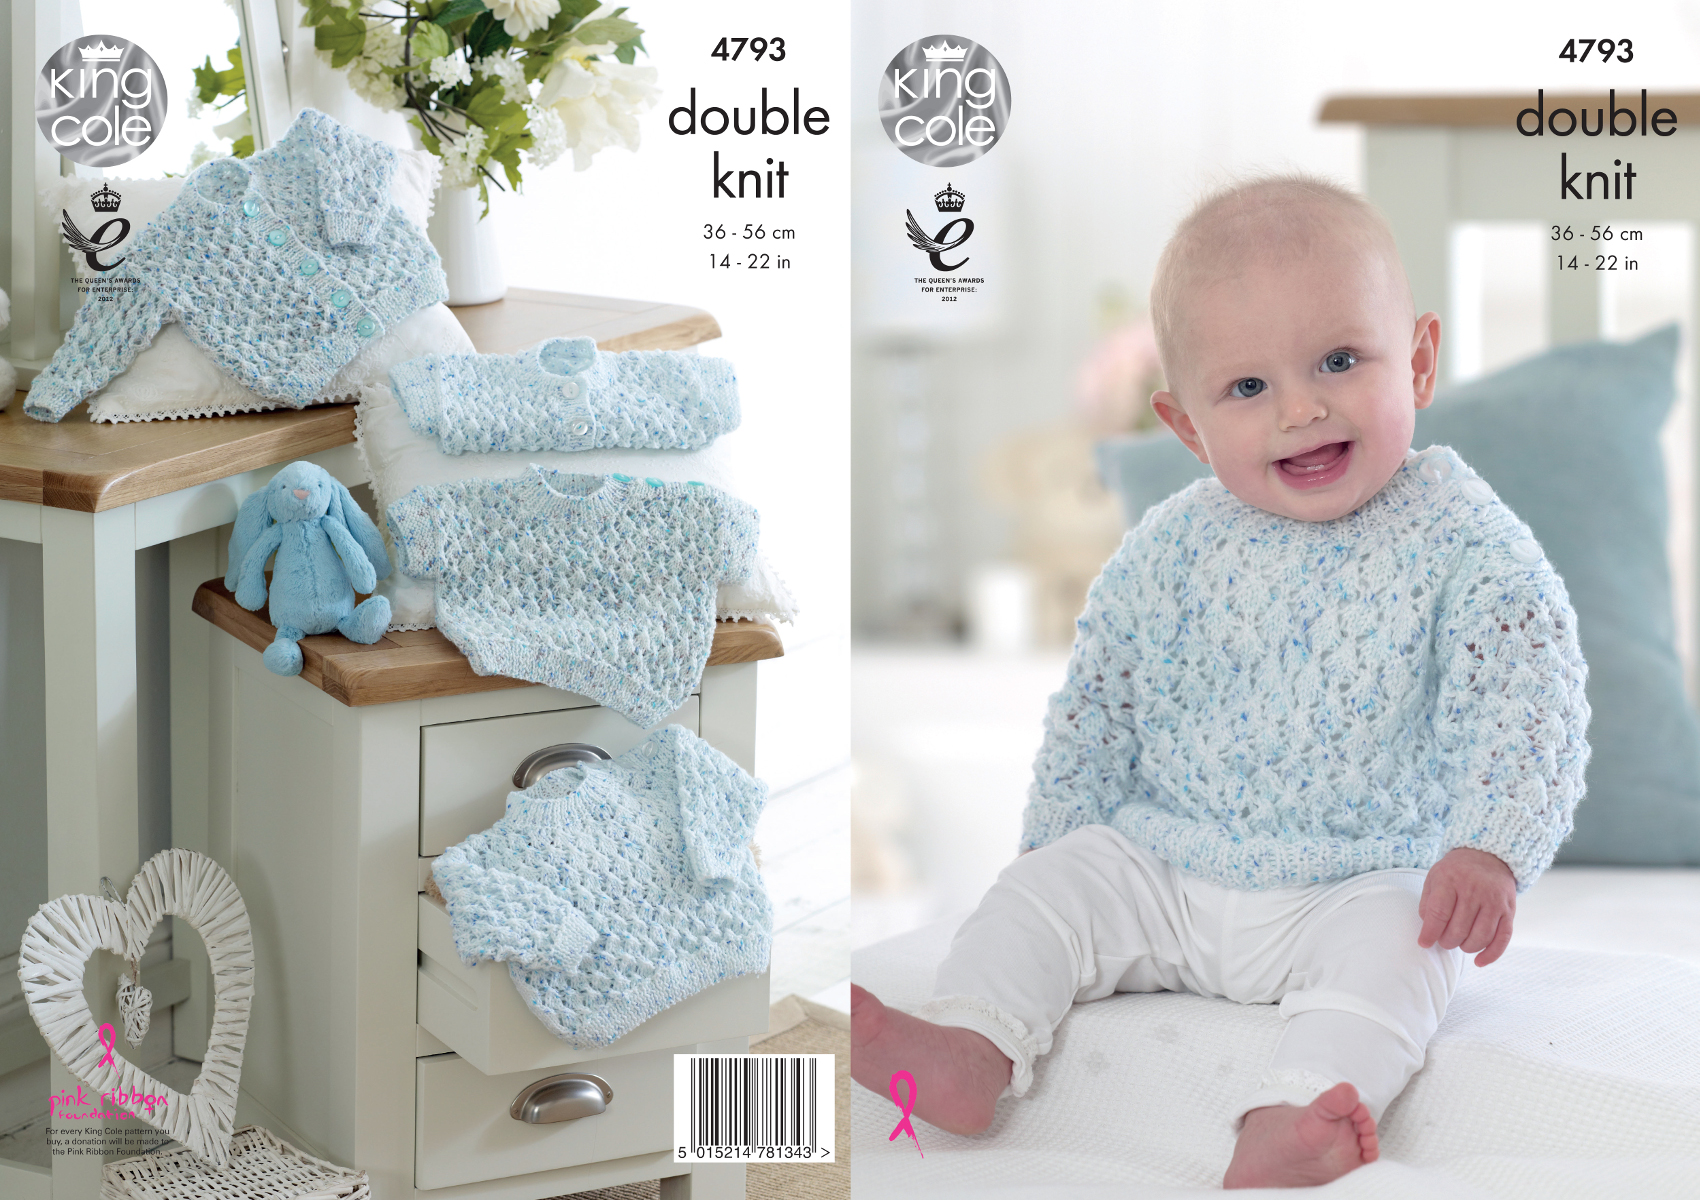 King cole baby double knitting pattern short or long sleeve jumper image is loading king cole baby double knitting pattern short or bankloansurffo Choice Image